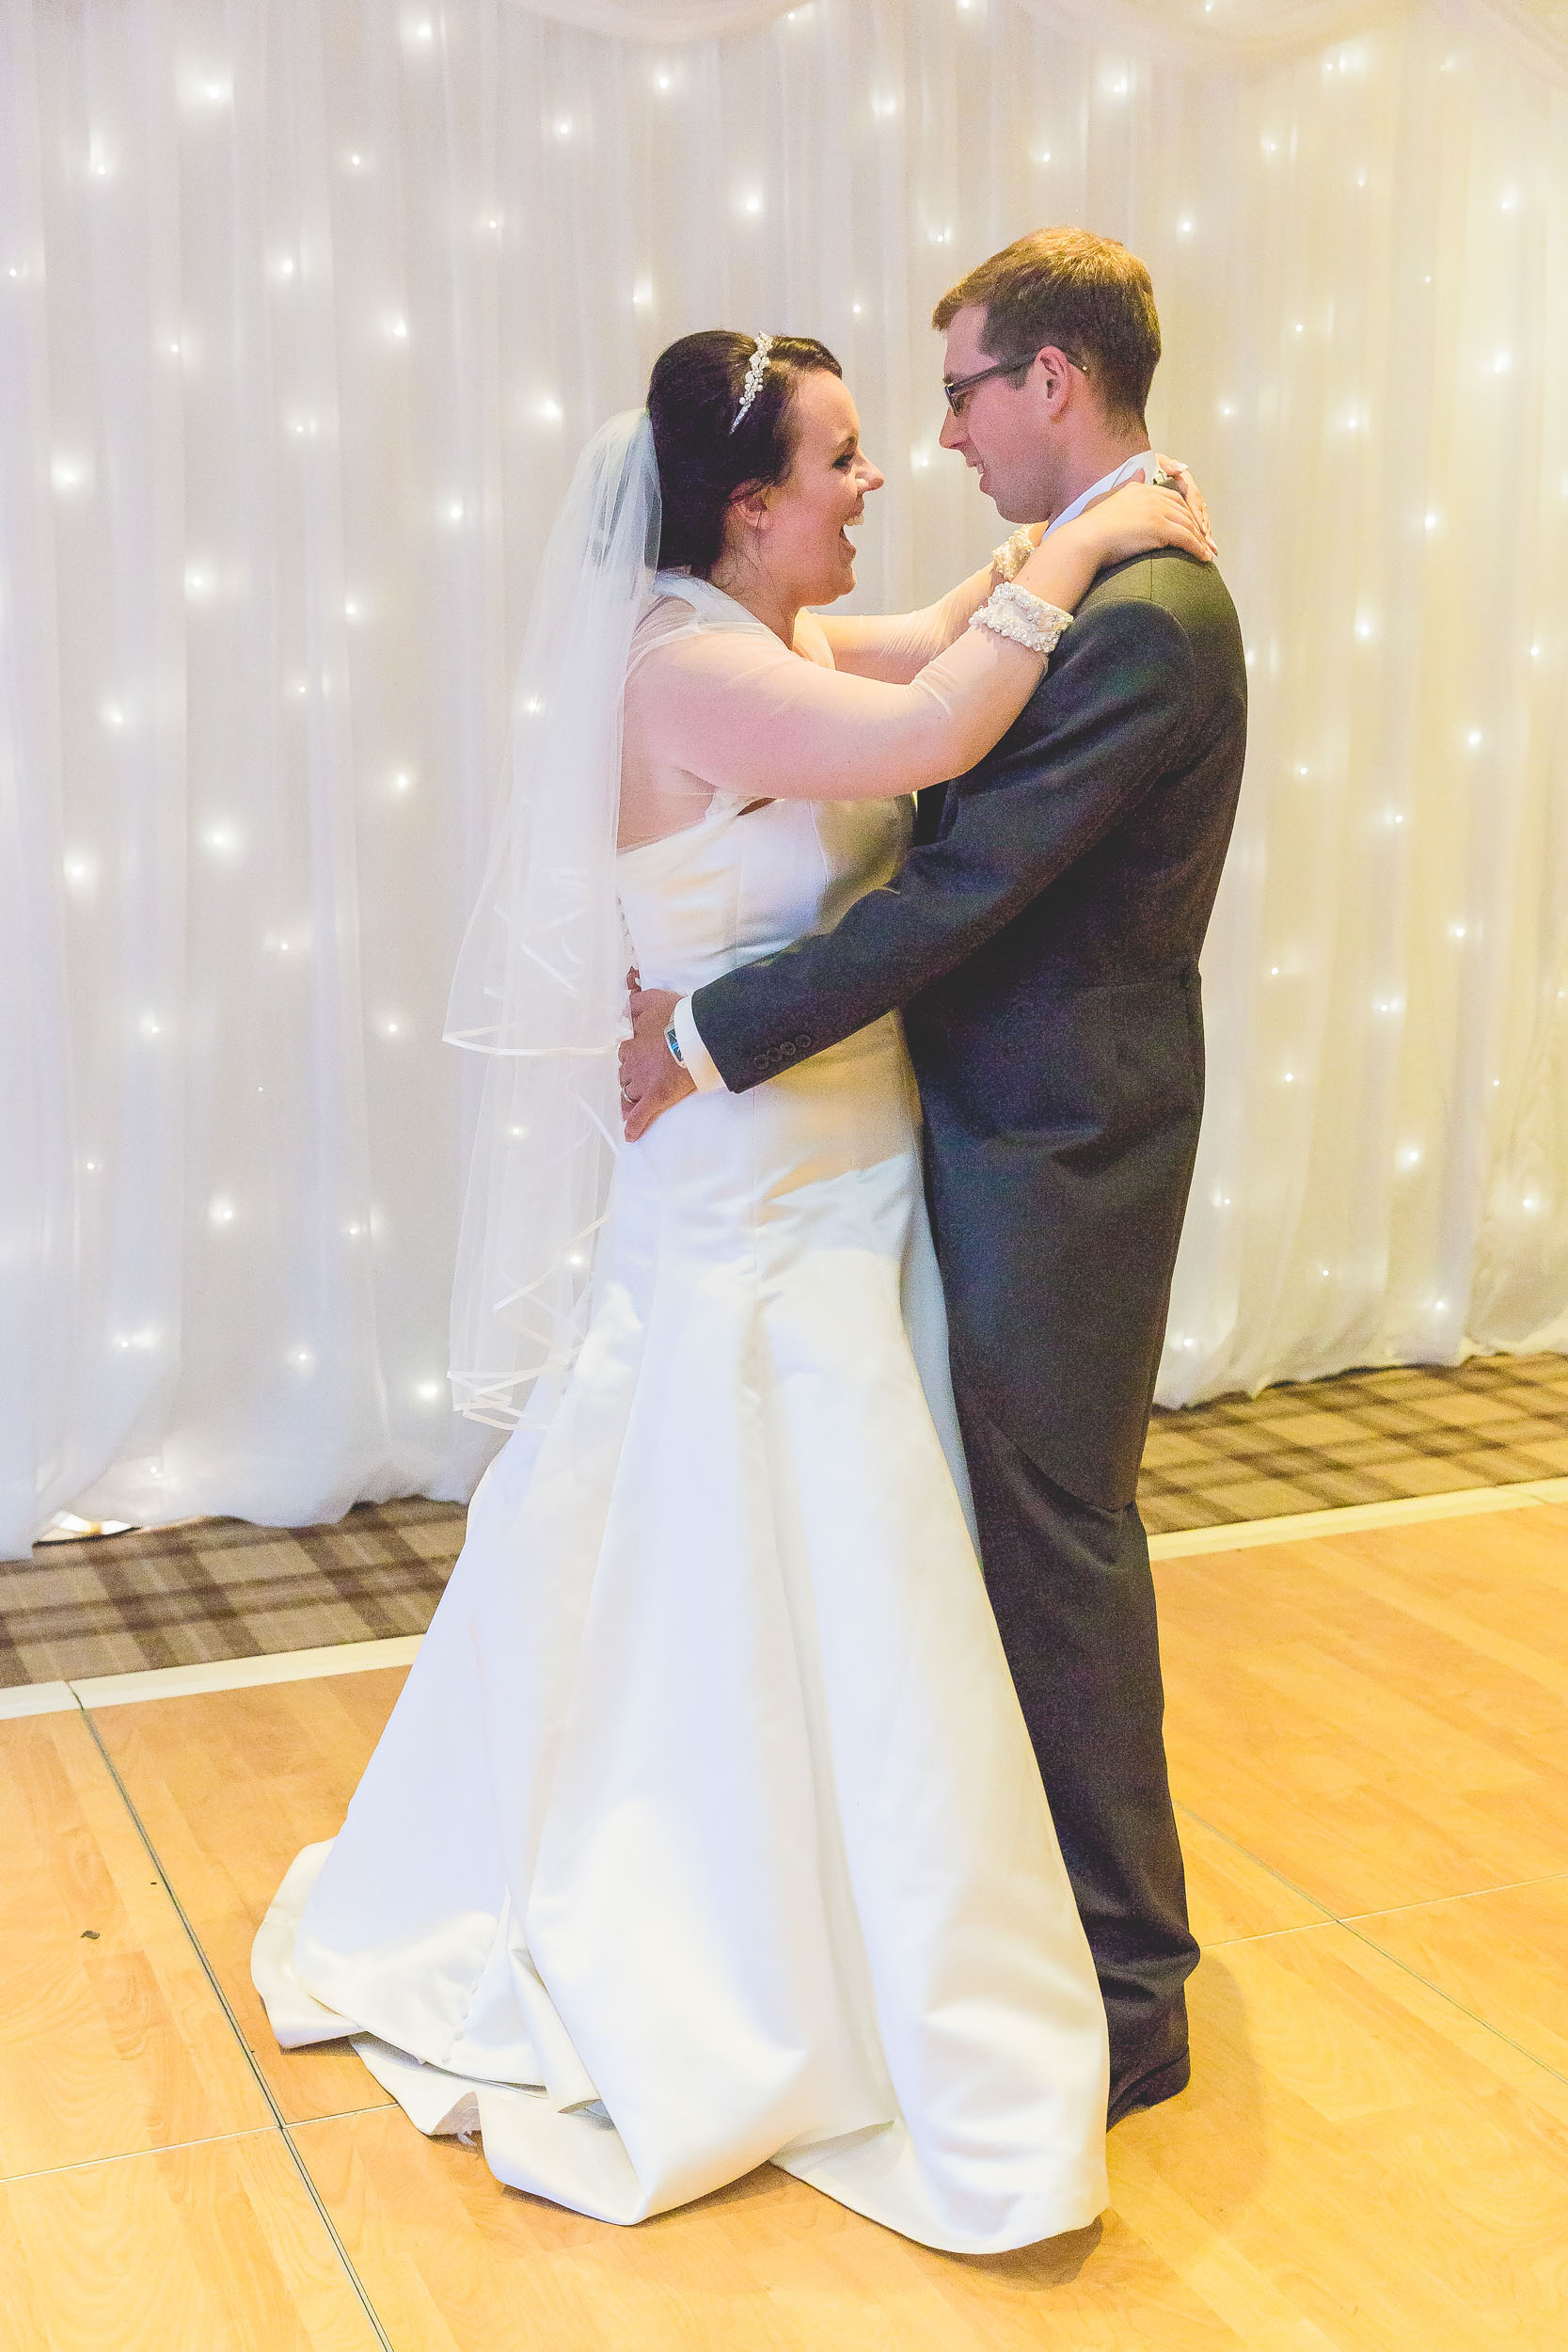 Nicola & Matt-Wedding-Coniston Cold Hotel-Yorkshire-photo-0607.jpg